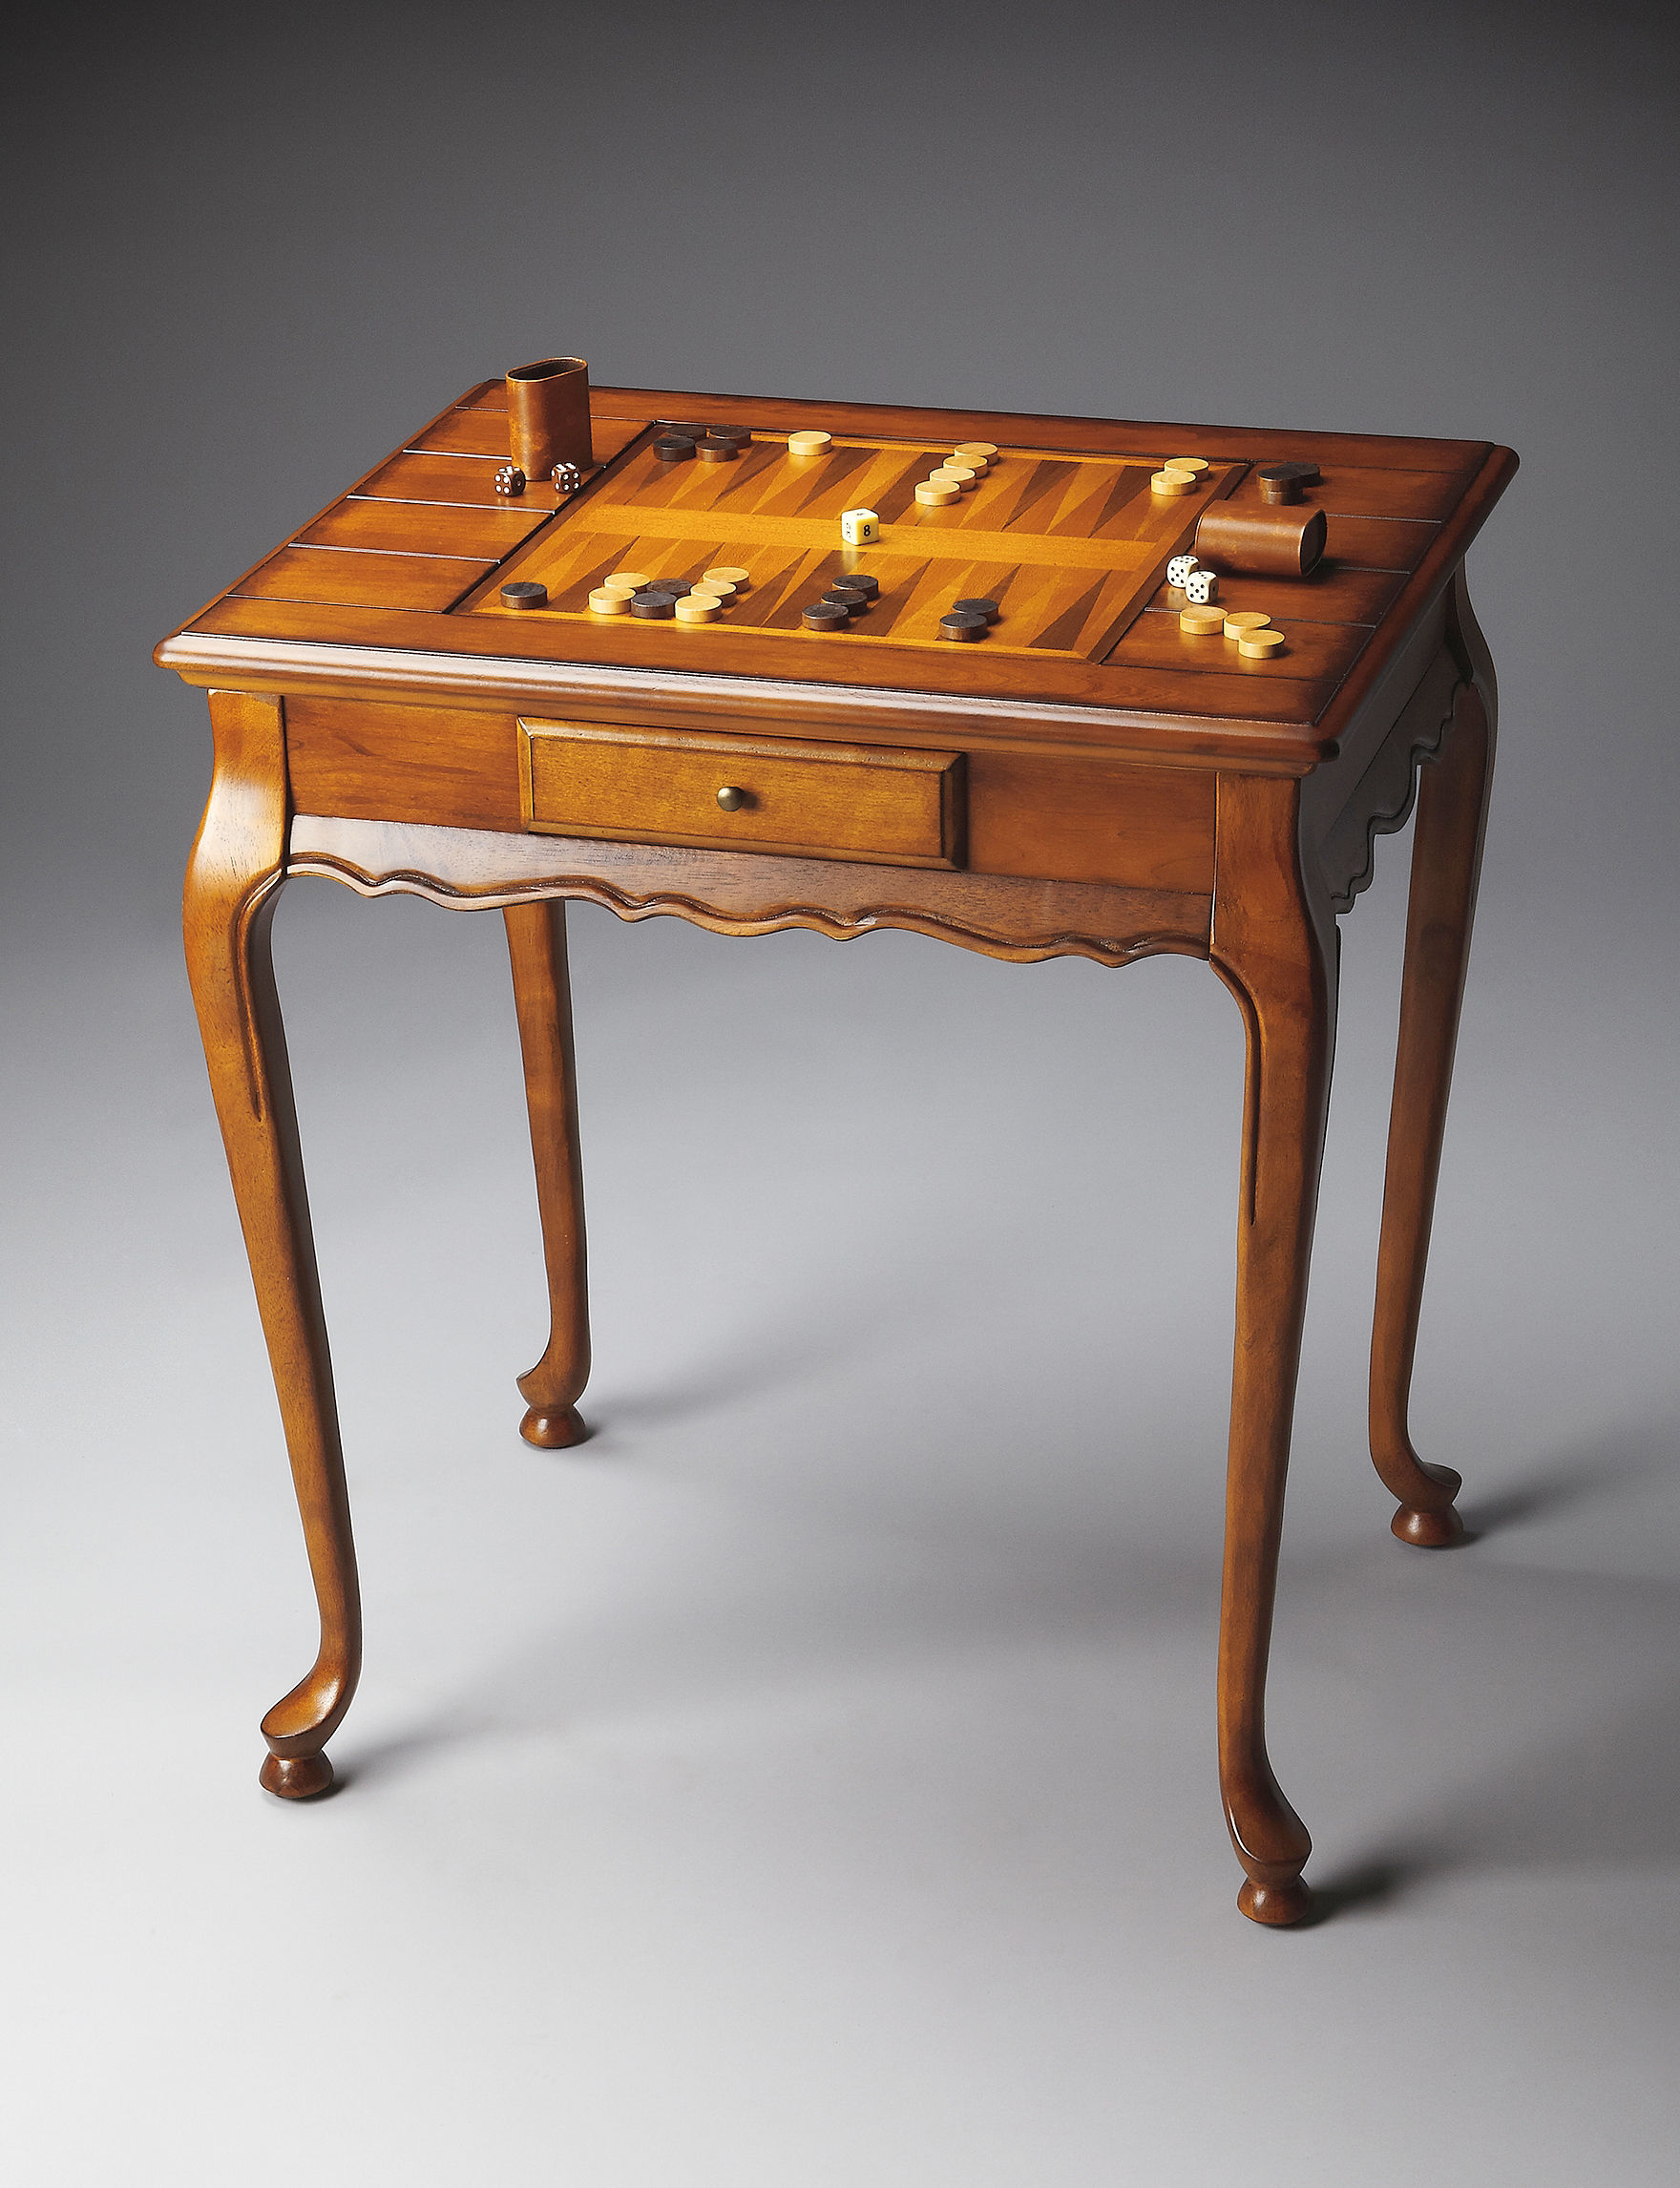 Butler Specialty Co. Olive Ash Burl Game Table - Light Brown - Butler Specialty Co.